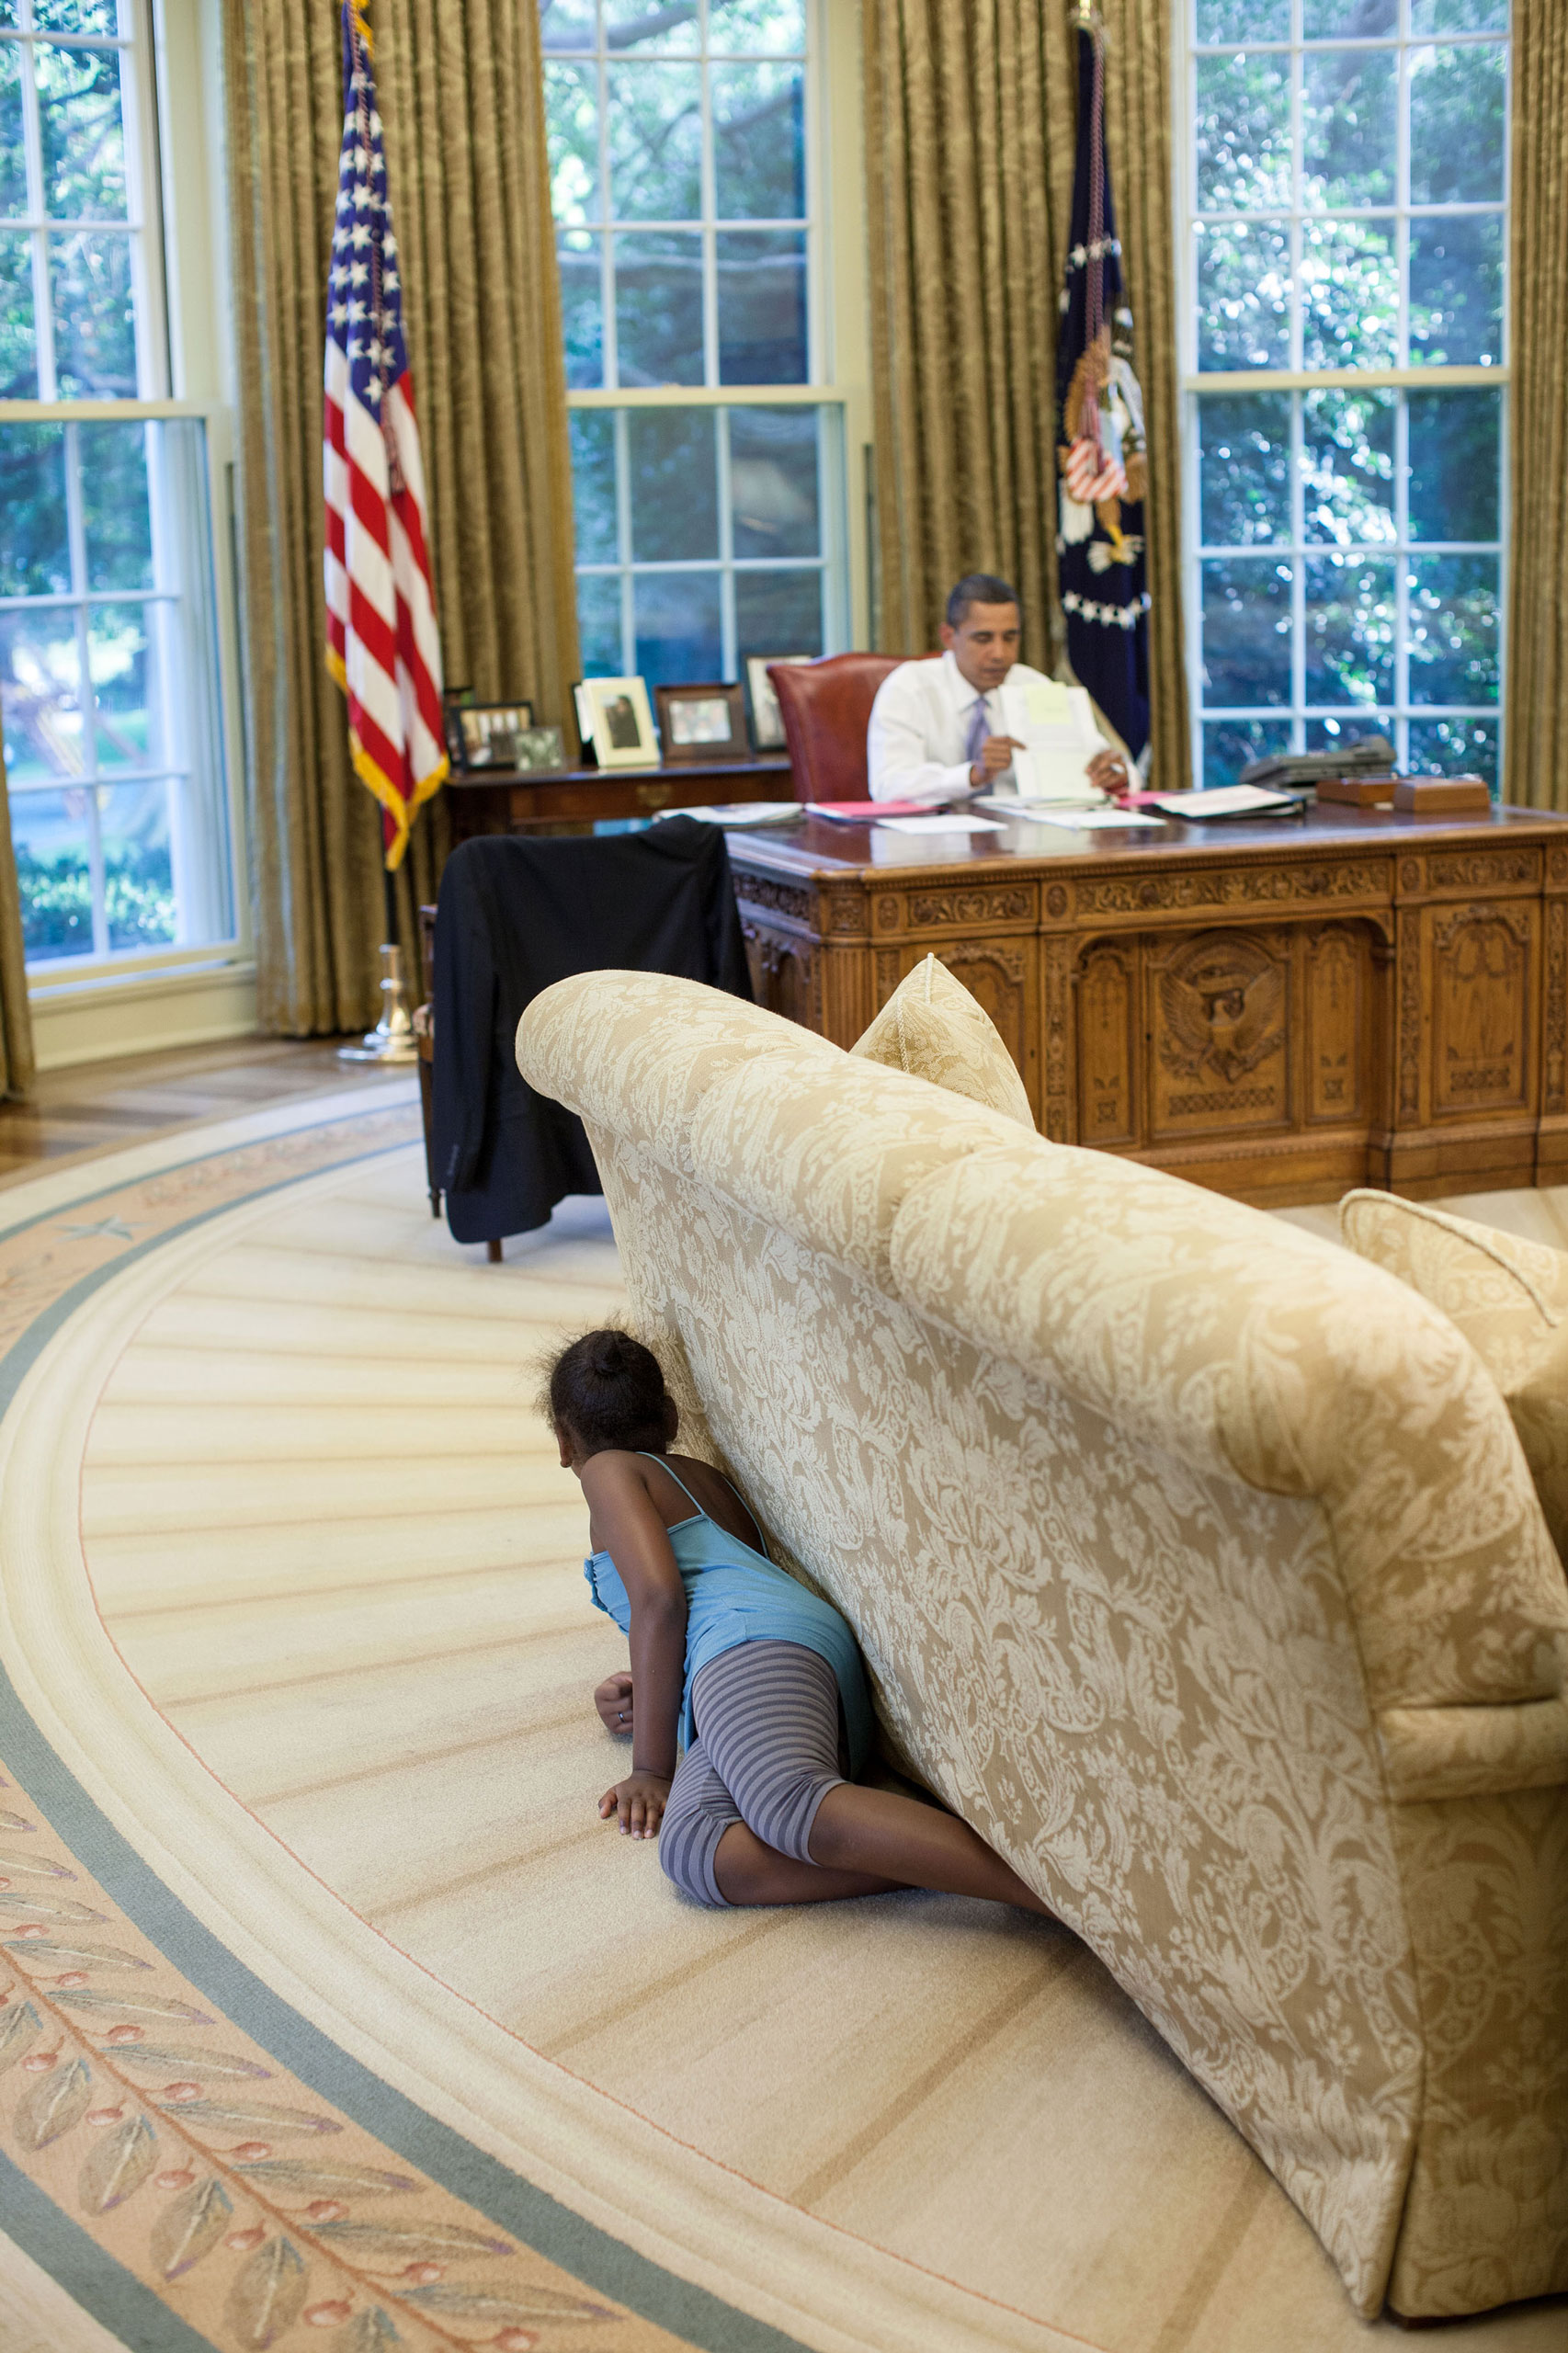 """""""I was sitting in the reception area outside the Oval Office on Aug. 5, 2009, when Sasha walked by and headed to the Oval. I suspected something was up, so I followed her. Sasha then crawled into the office, hiding behind the sofa, and when she reached the far end, jumped up and yelled, trying spook her dad."""""""